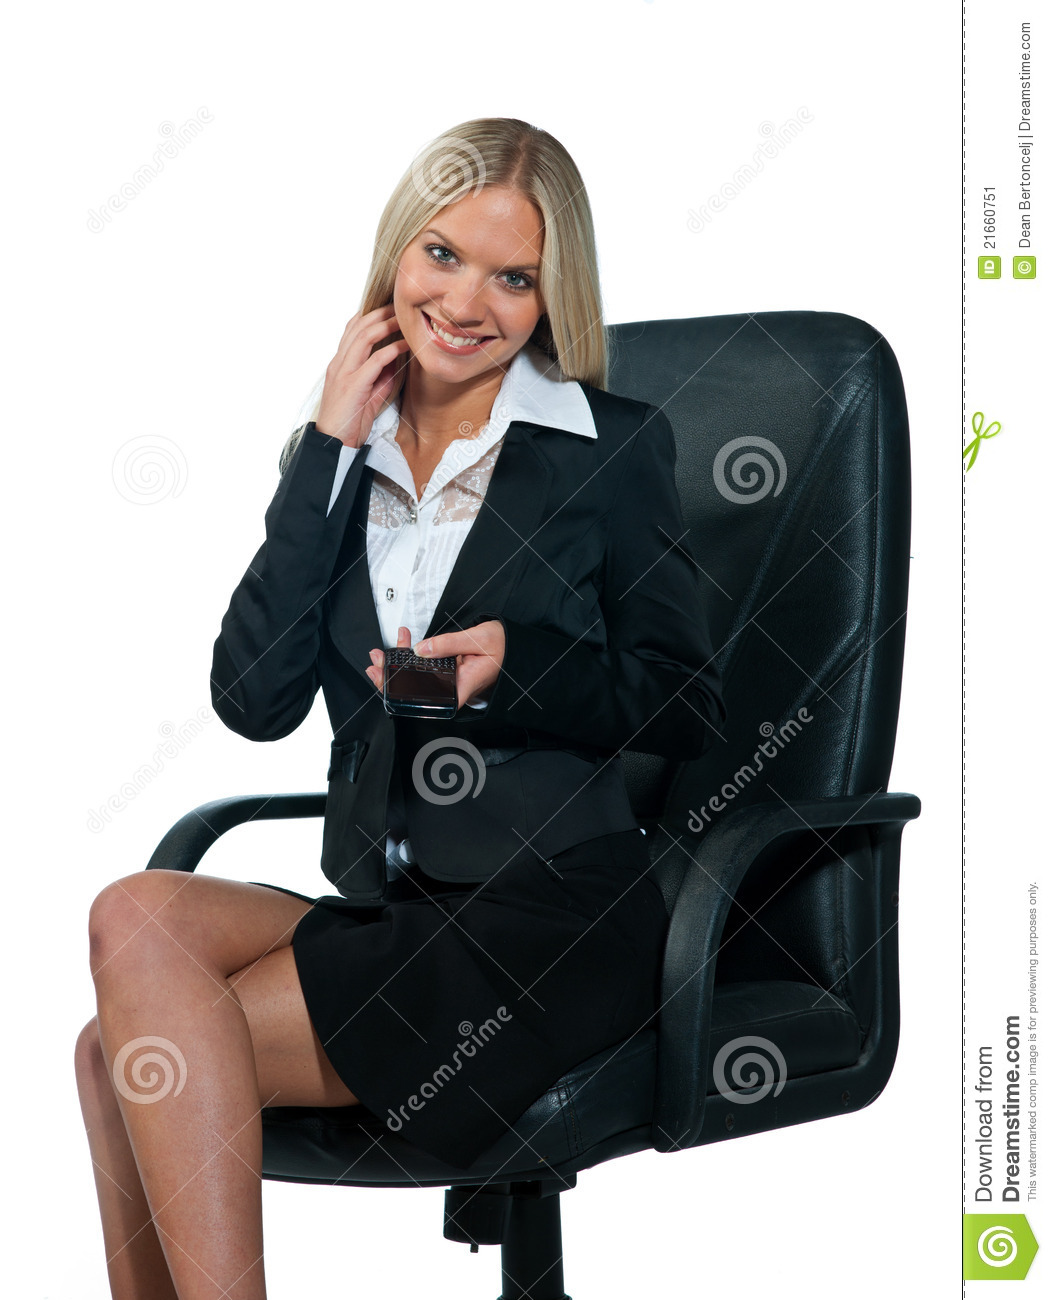 woman sitting in chair as rental business office stock image